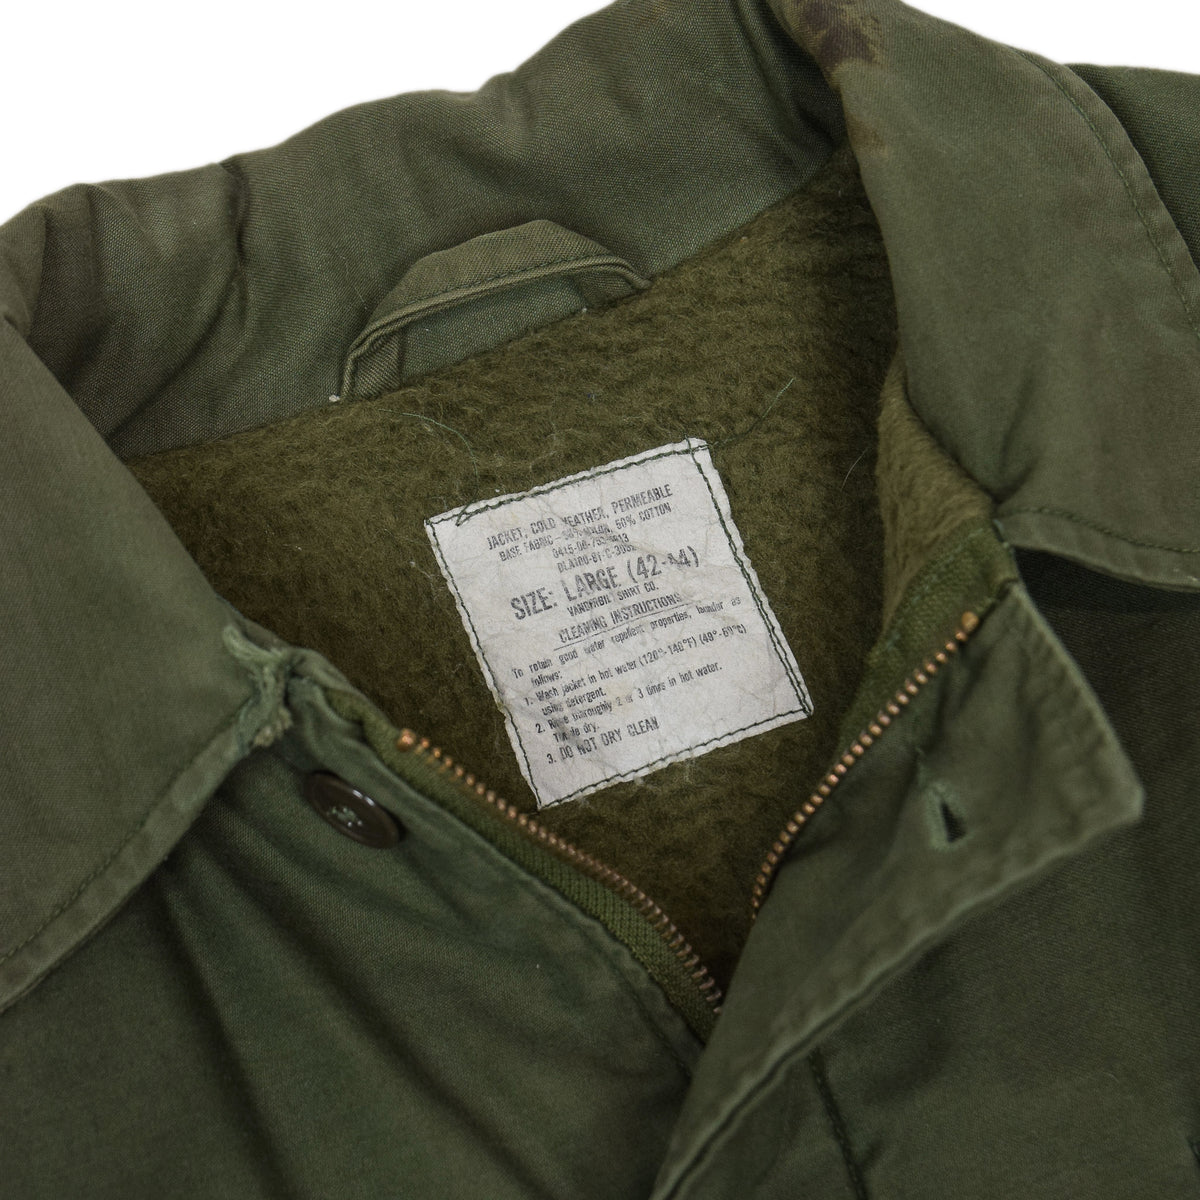 Vintage 80s US Navy USN A-2 Deck Jacket Cold Weather Permeable Green L label